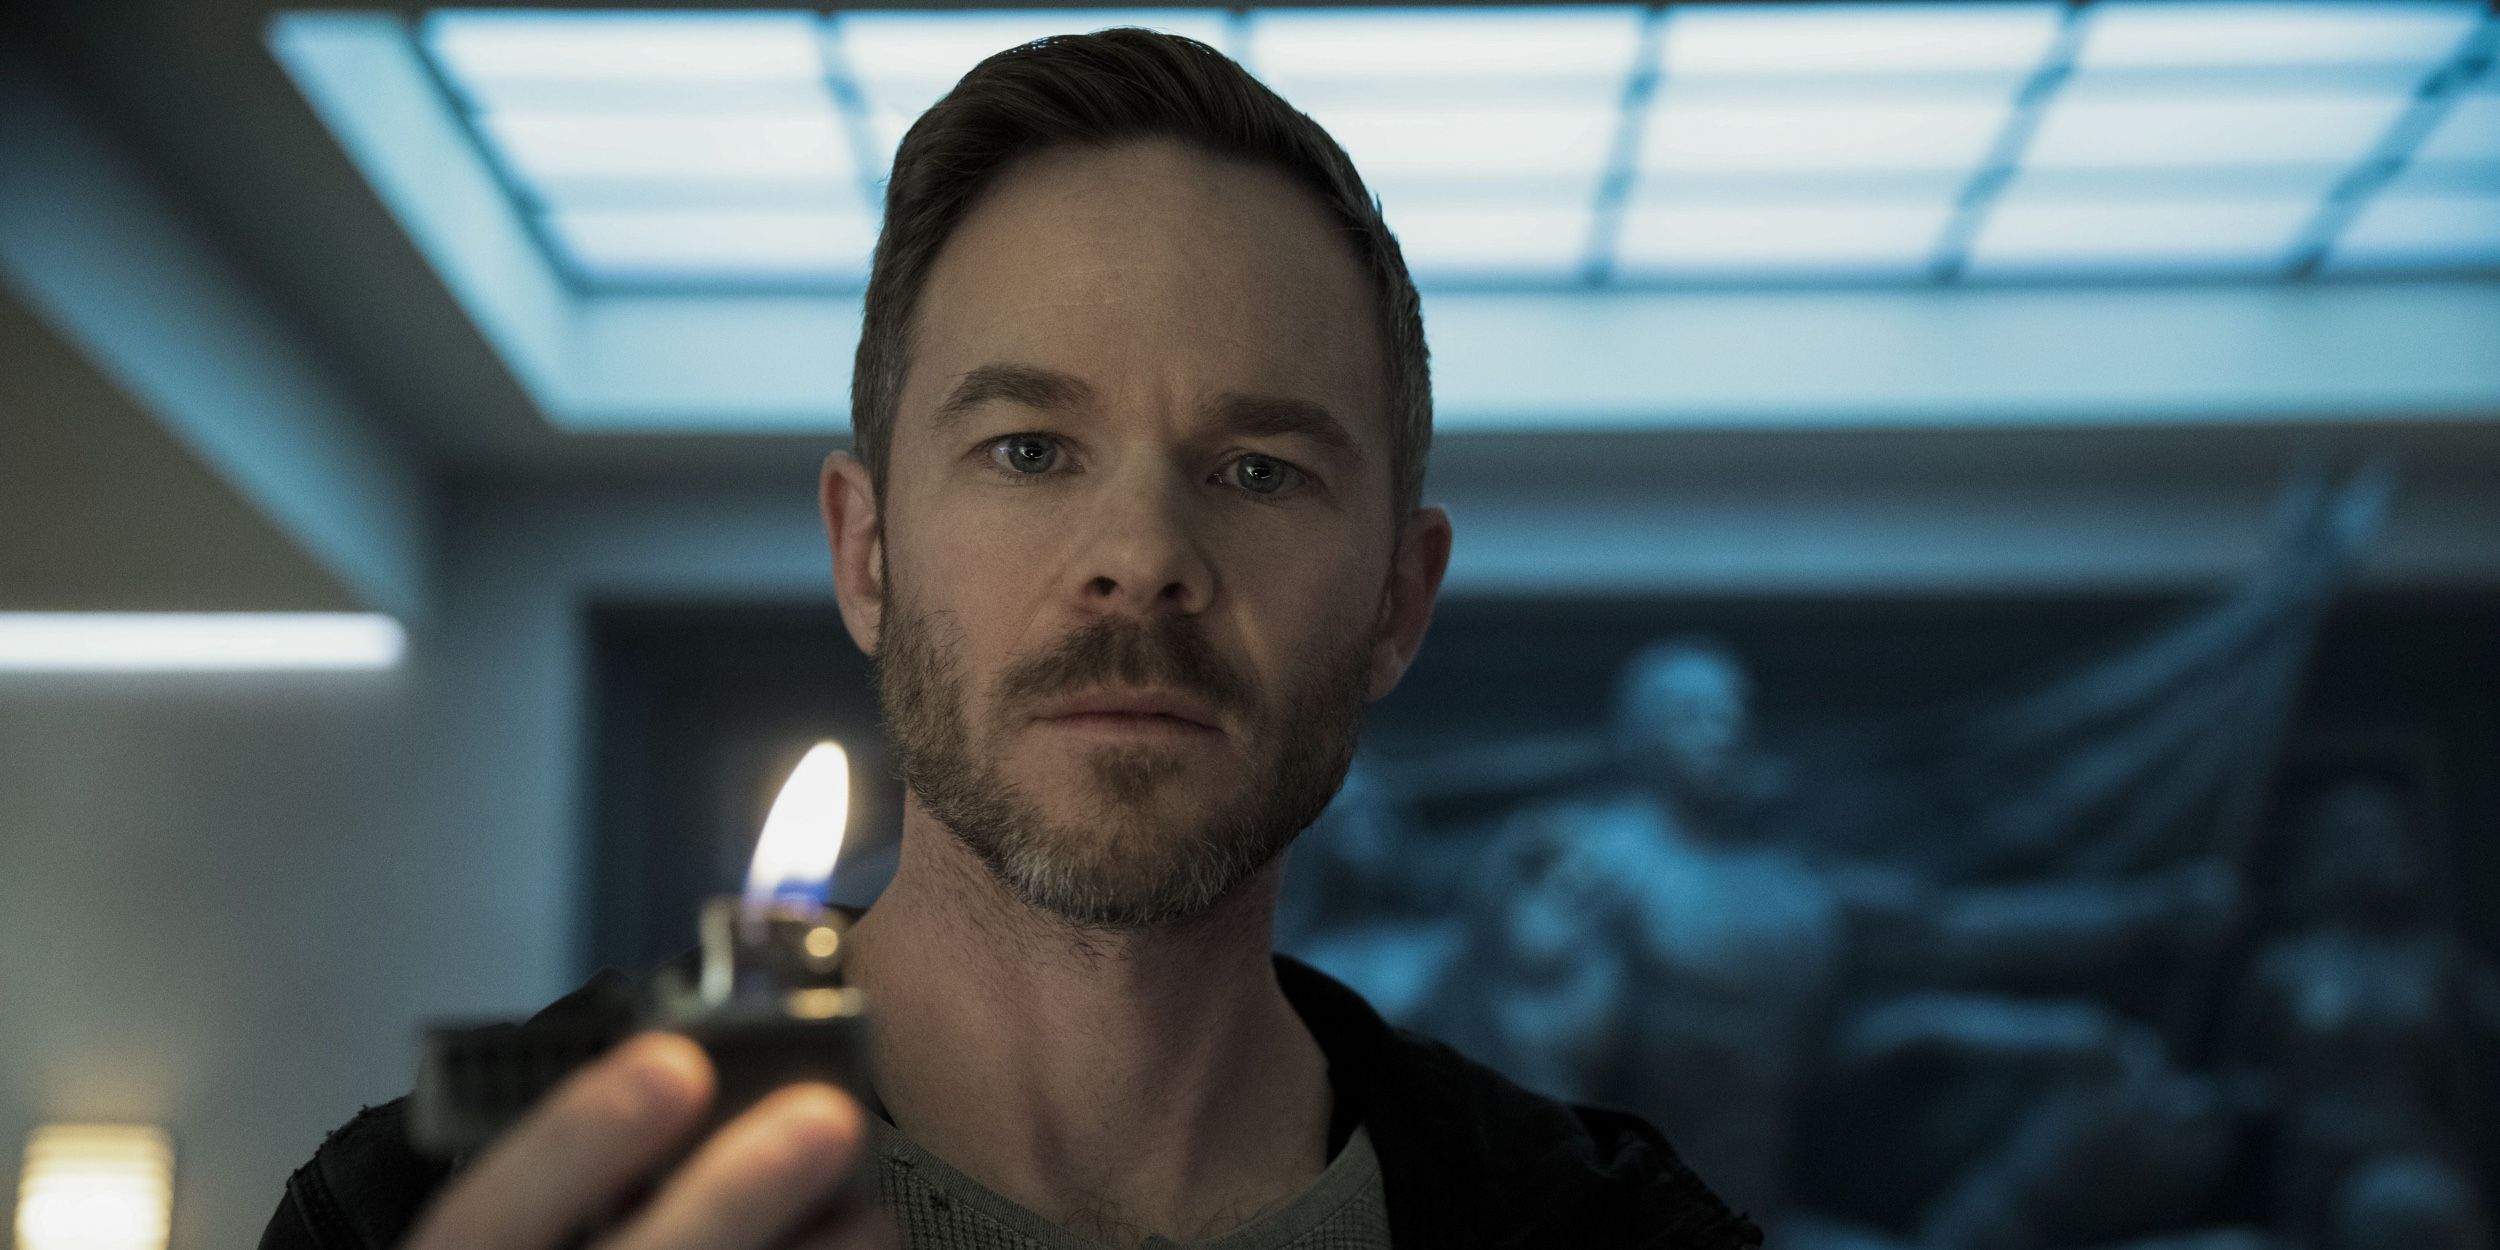 Shawn-Ashmore-as-Lamplighter-in-The-Boys